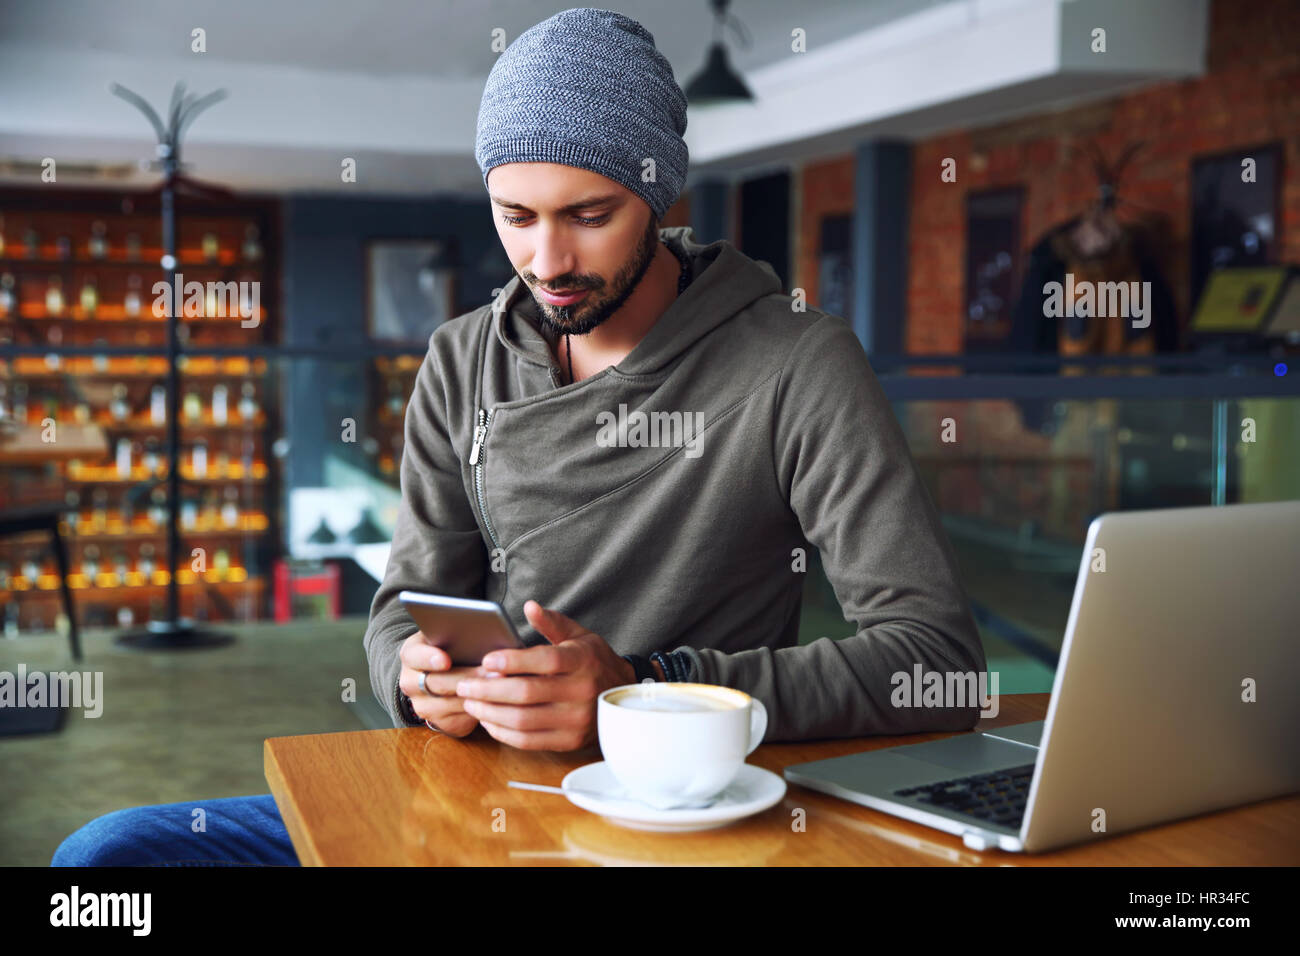 Young handsome hipster guy at the restaurant using a mobile phone. - Stock Image